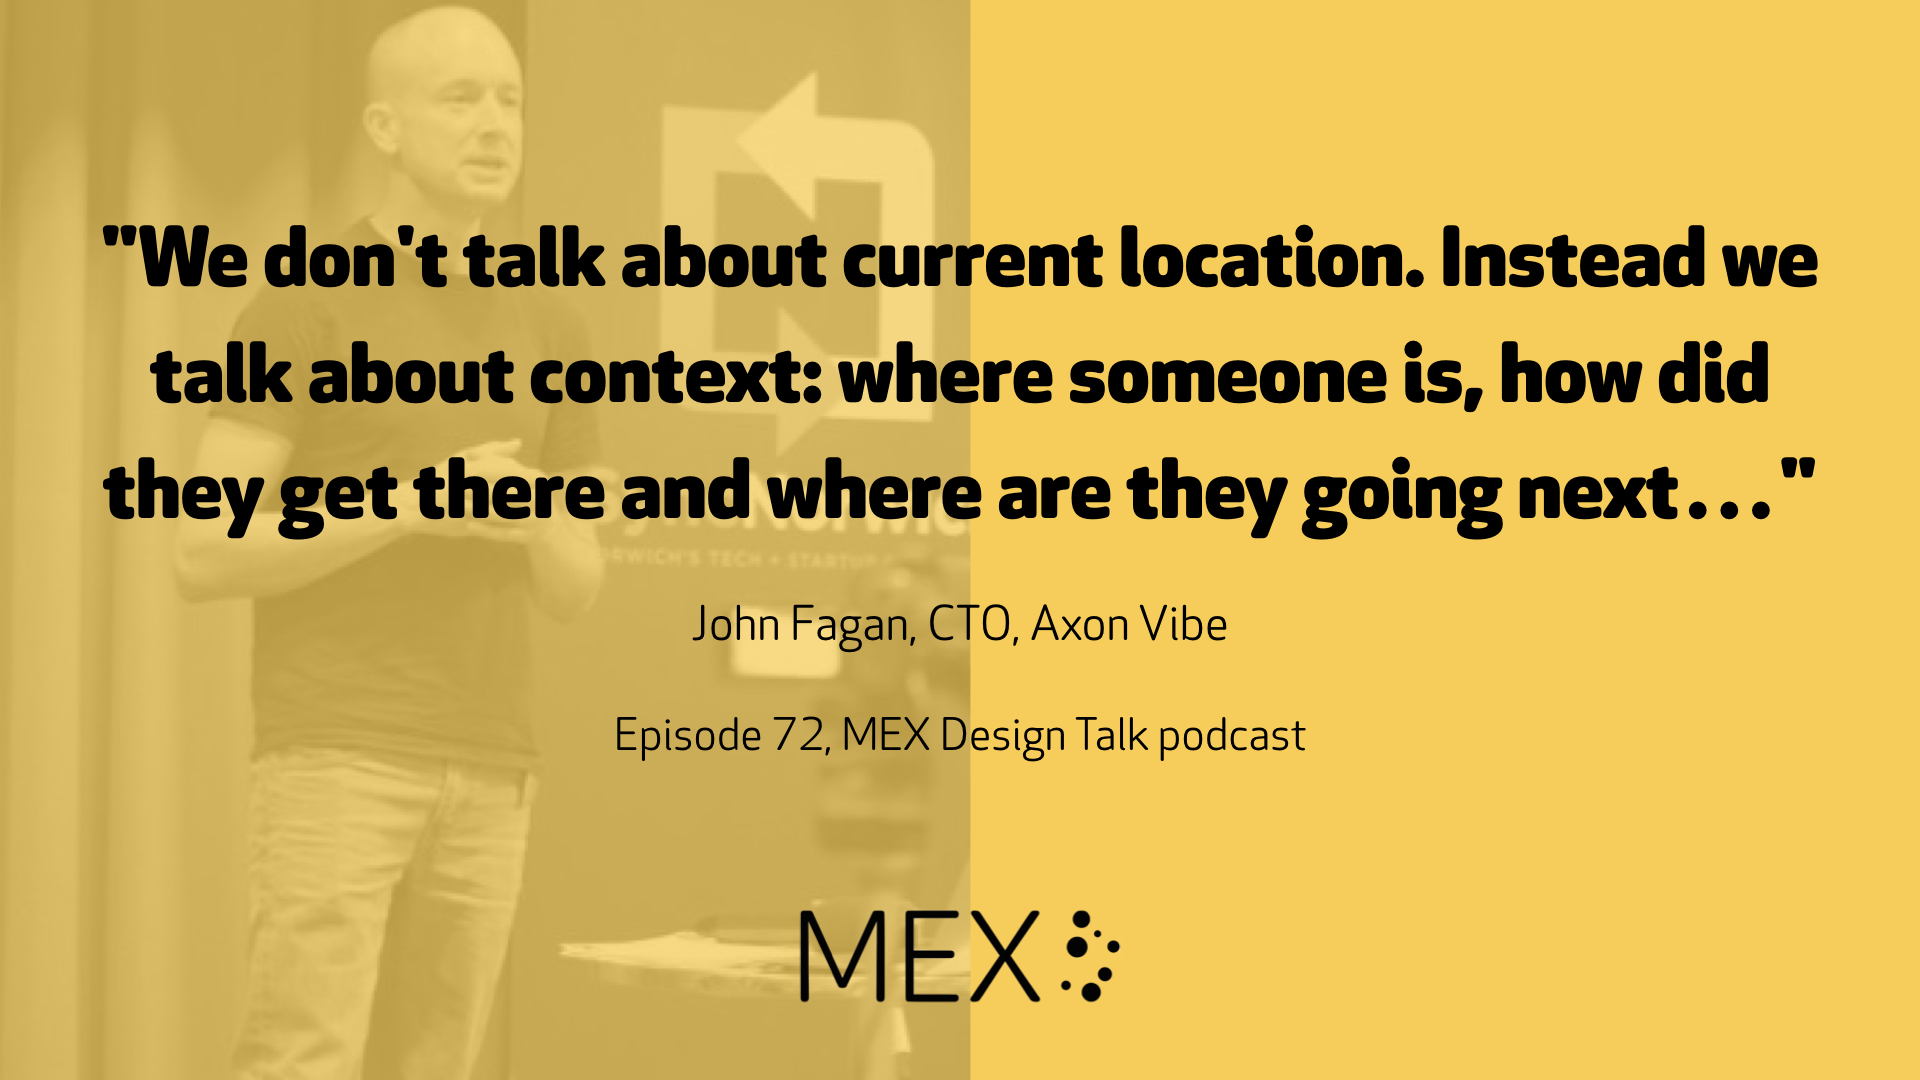 """We don't talk about current location. Instead we talk about context: where someone is, how did they get there and where are they going next…"" John Fagan, CTO, Axon Vibe Episode 72, MEX Design Talk podcast"